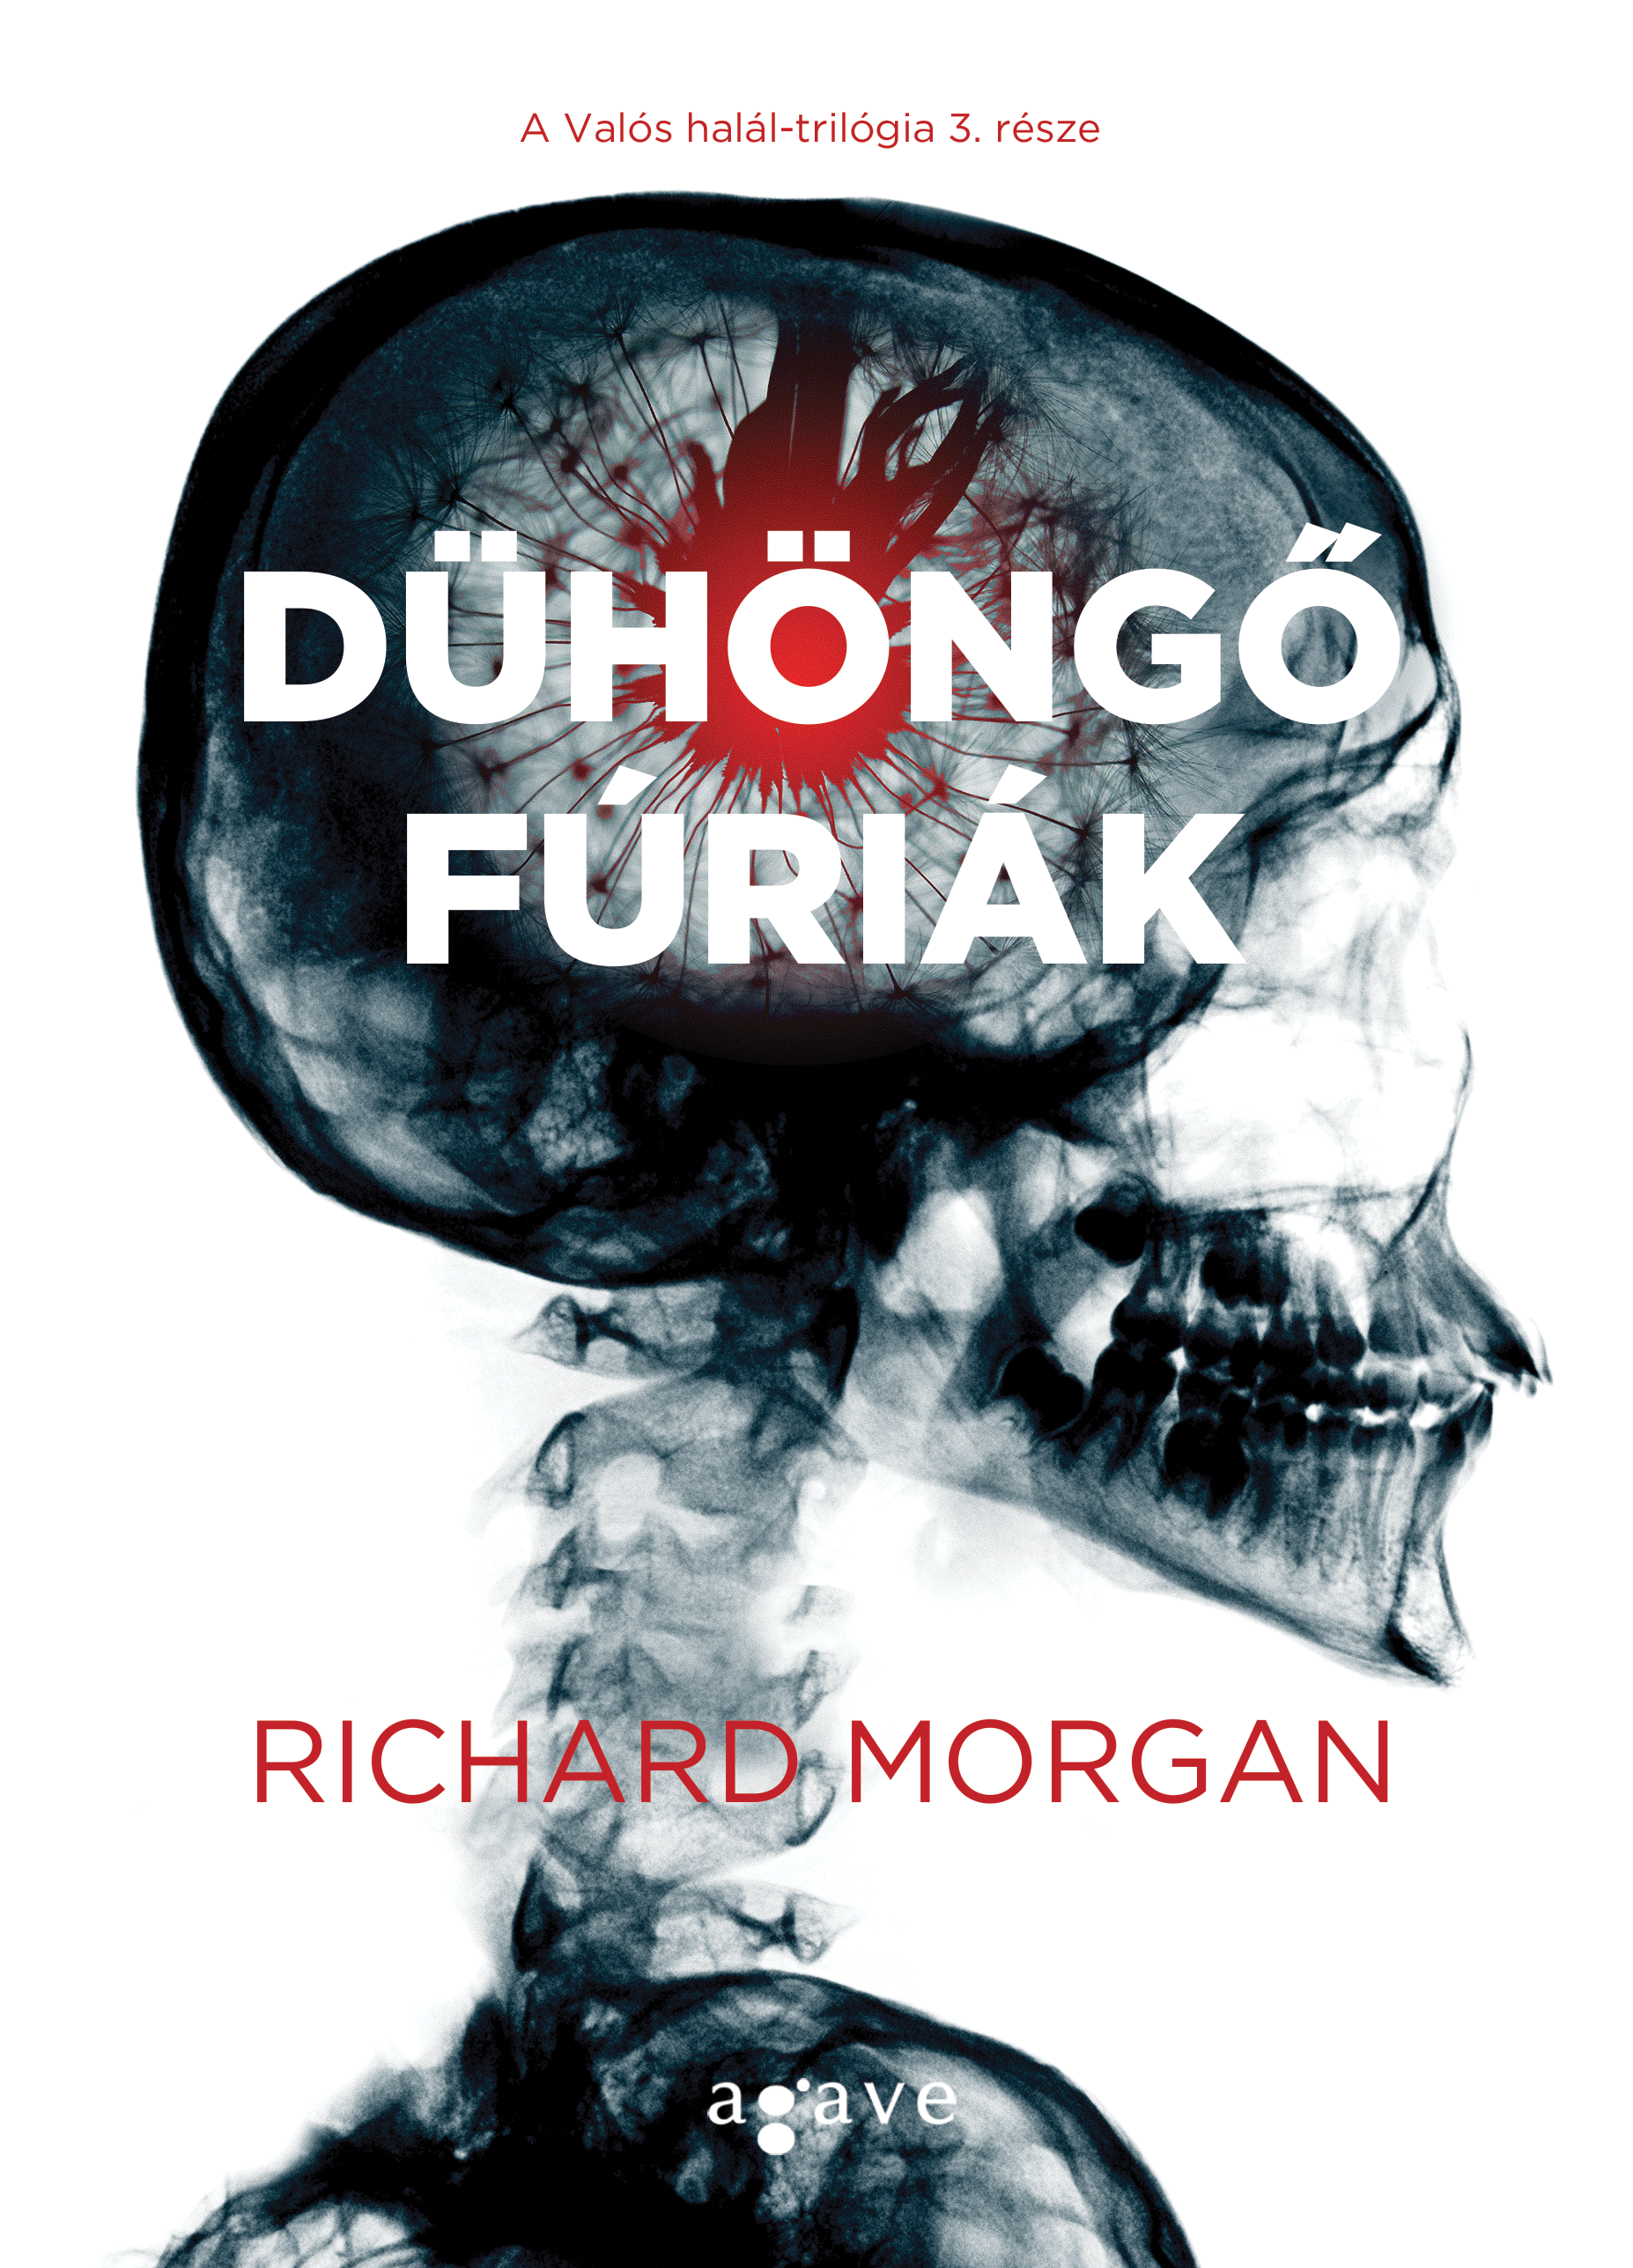 richard_morgan_duhongo_furiak_b1.png